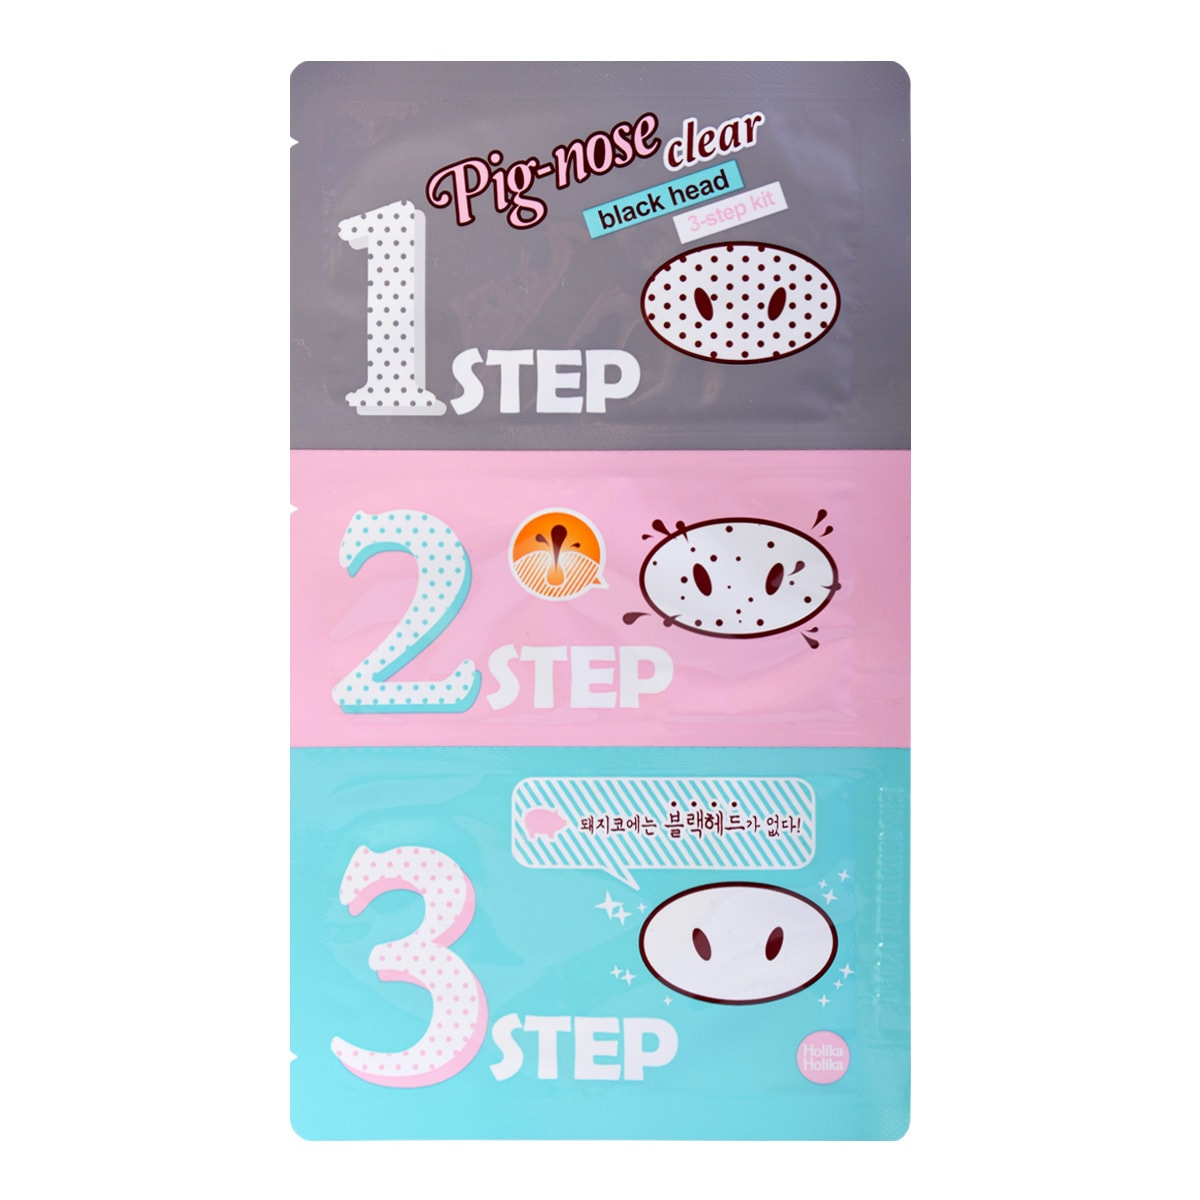 Yamibuy.com:Customer reviews:HOLIKA HOLIKA PIG-NOSE Clear Blackhead 3-STEP Kit